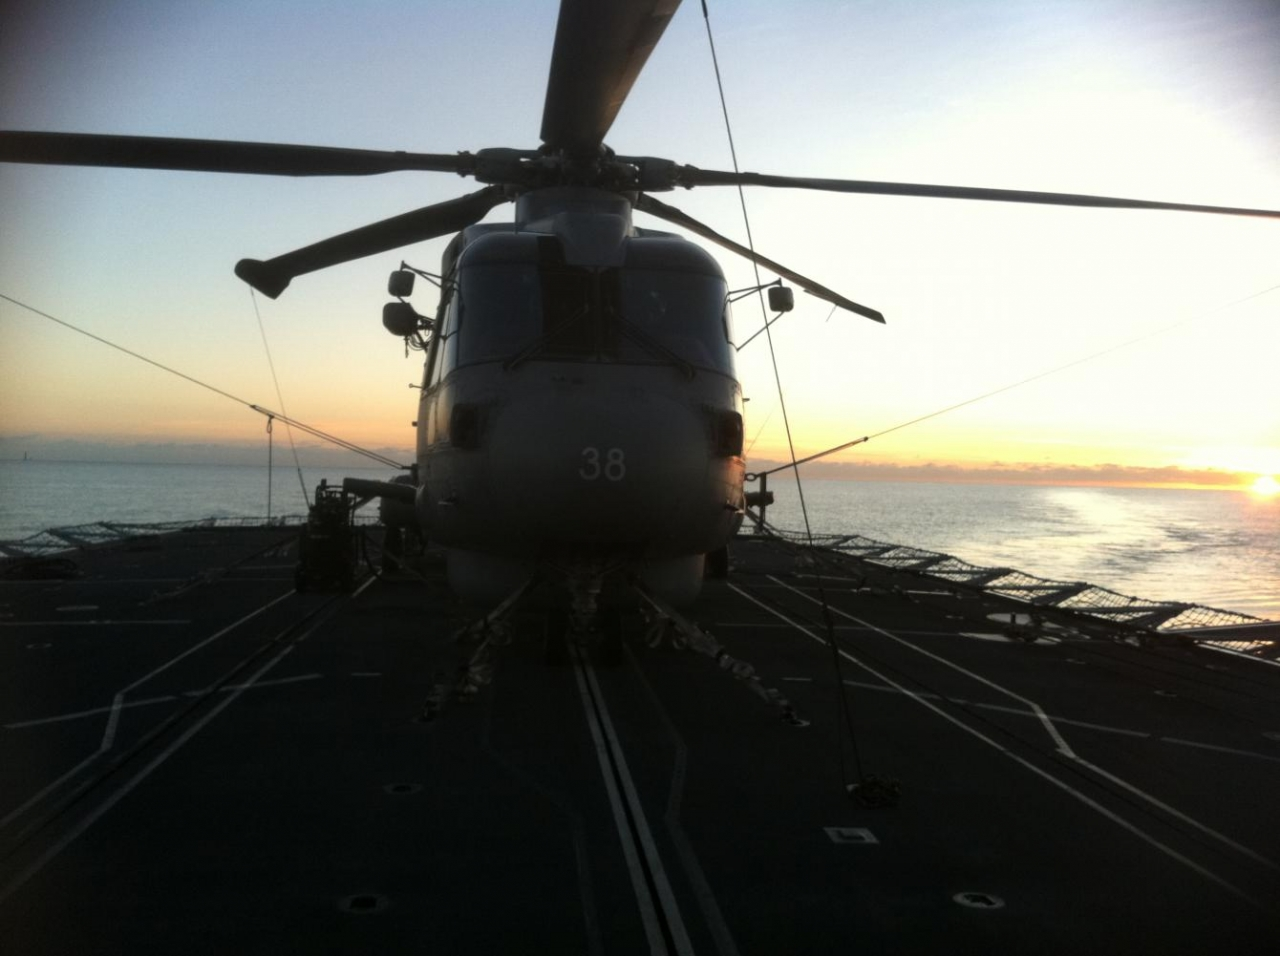 HMS Sutherland - Merlin Sunset